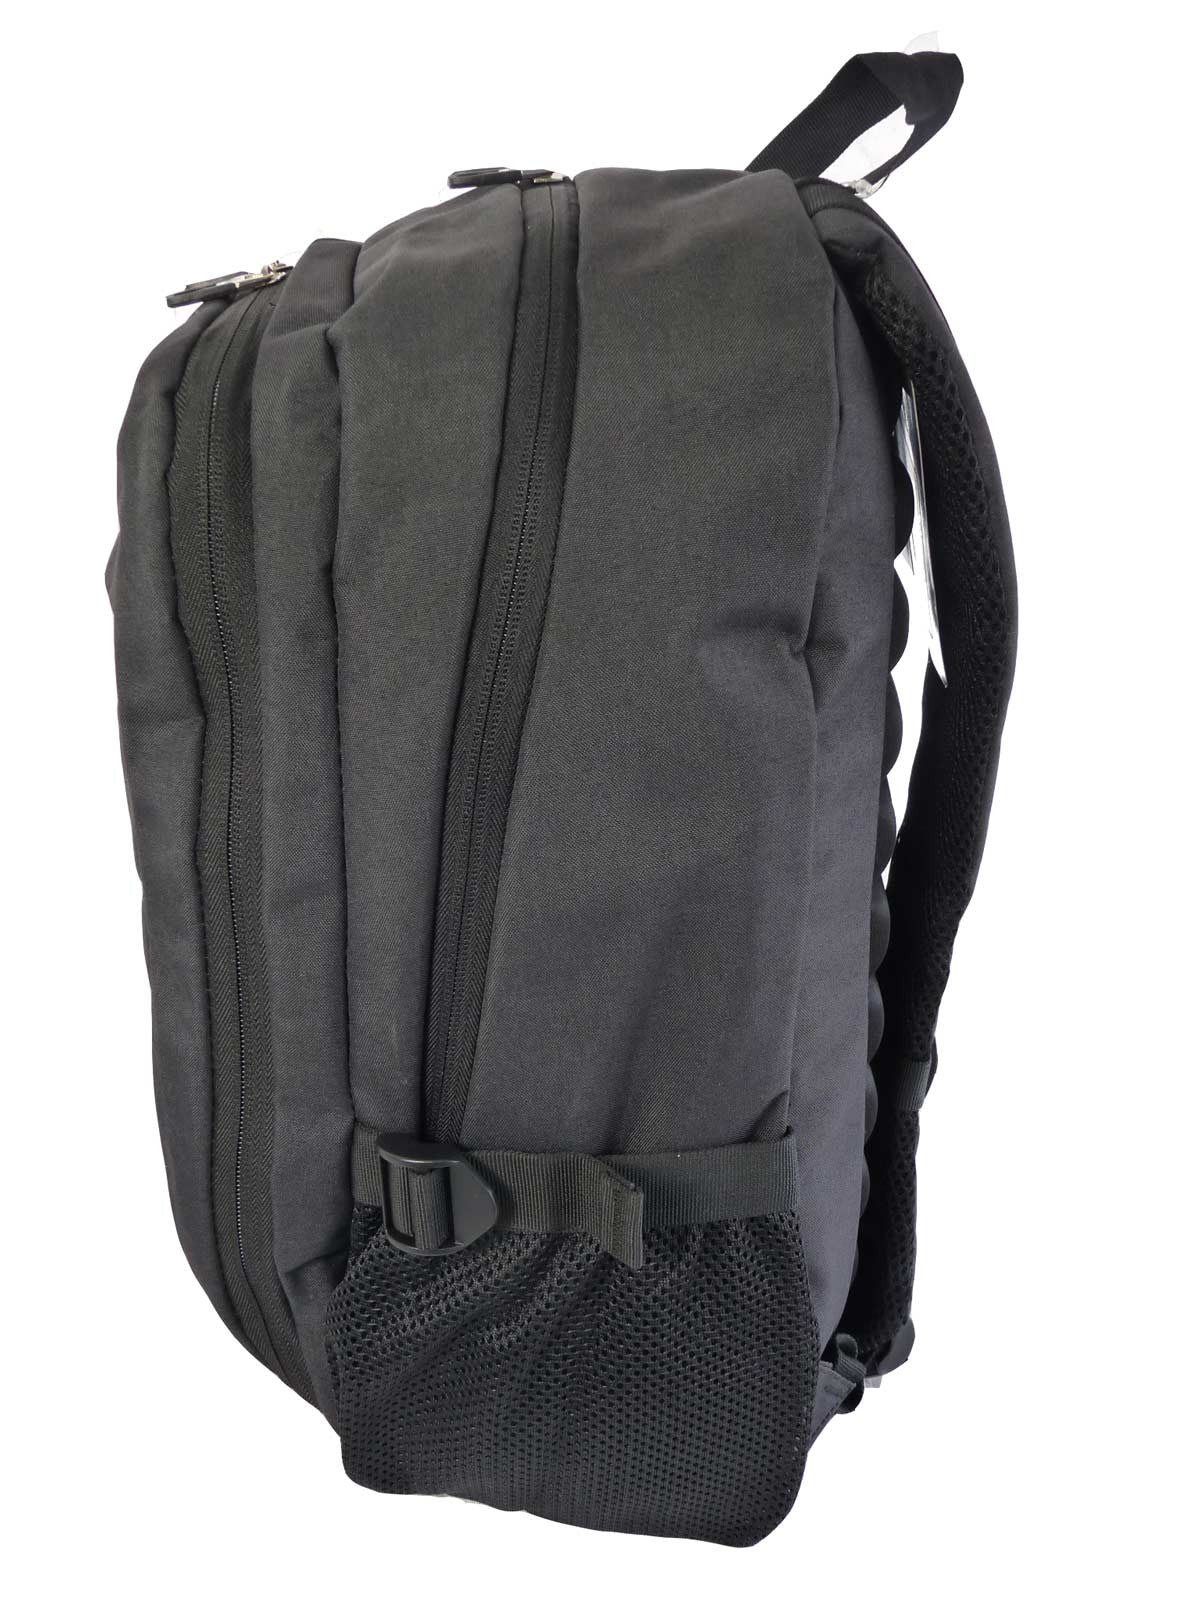 Laptop Macbook Backpack Rucksack Bag RL45K S Side View